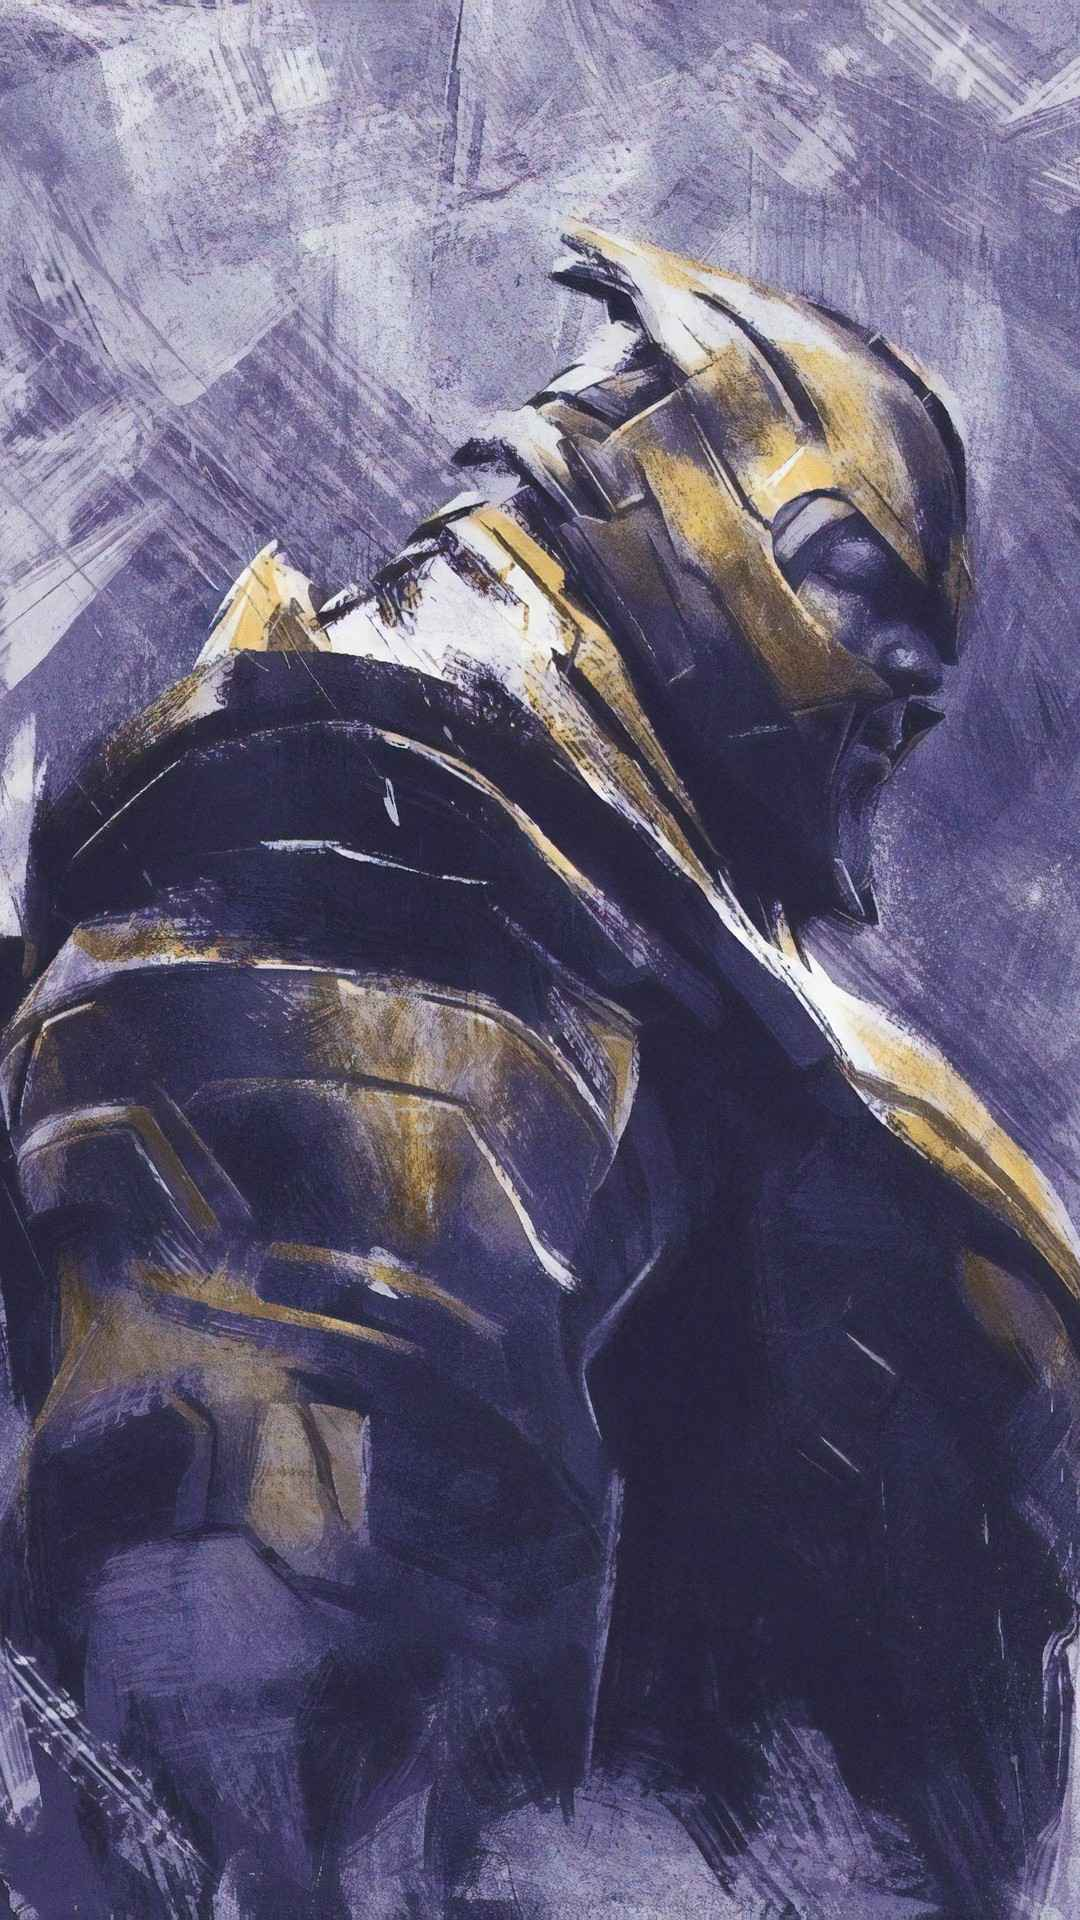 The Avegners Wallpaper Quotes Avengers Endgame Thanos Art Iphone Wallpaper Iphone